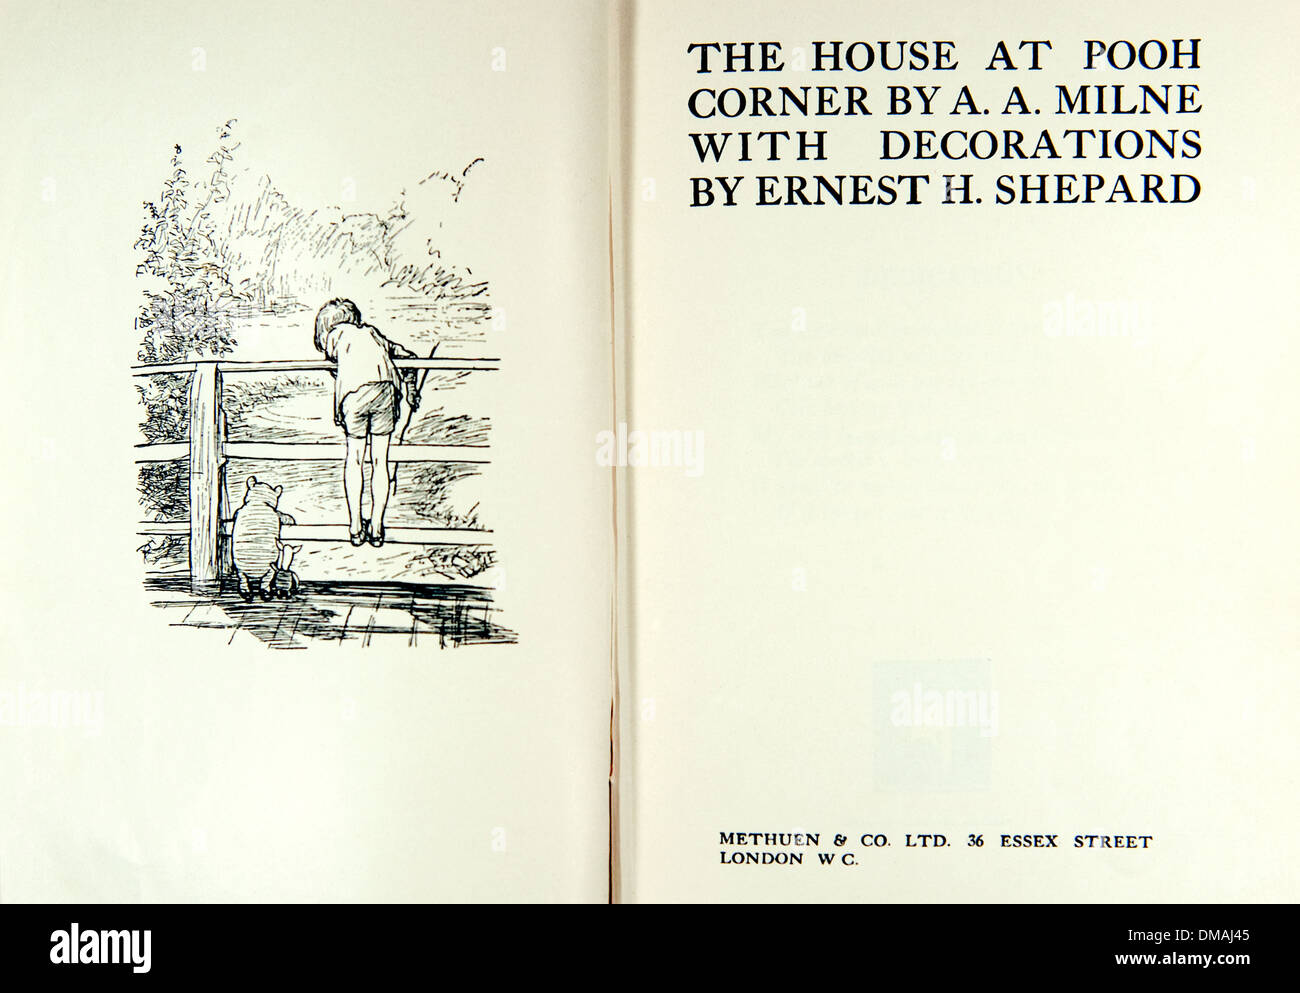 The House at Pooh Corner Old Book Illustration Historical Archival Document - Stock Image